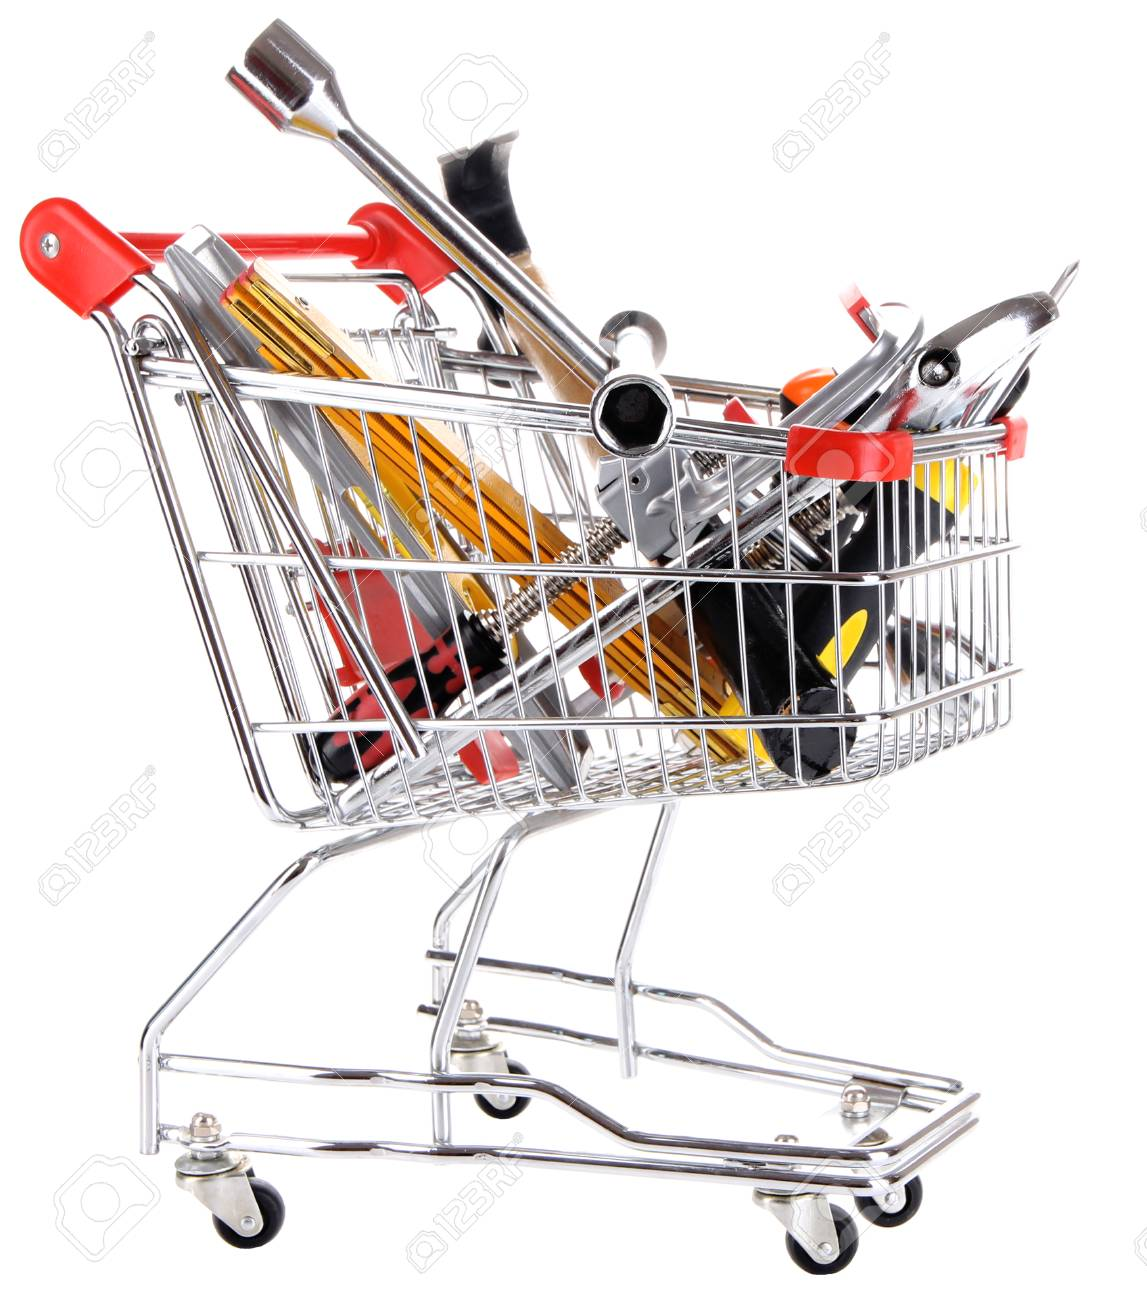 Construction tools in shopping cart isolated on white Stock Photo - 25753637